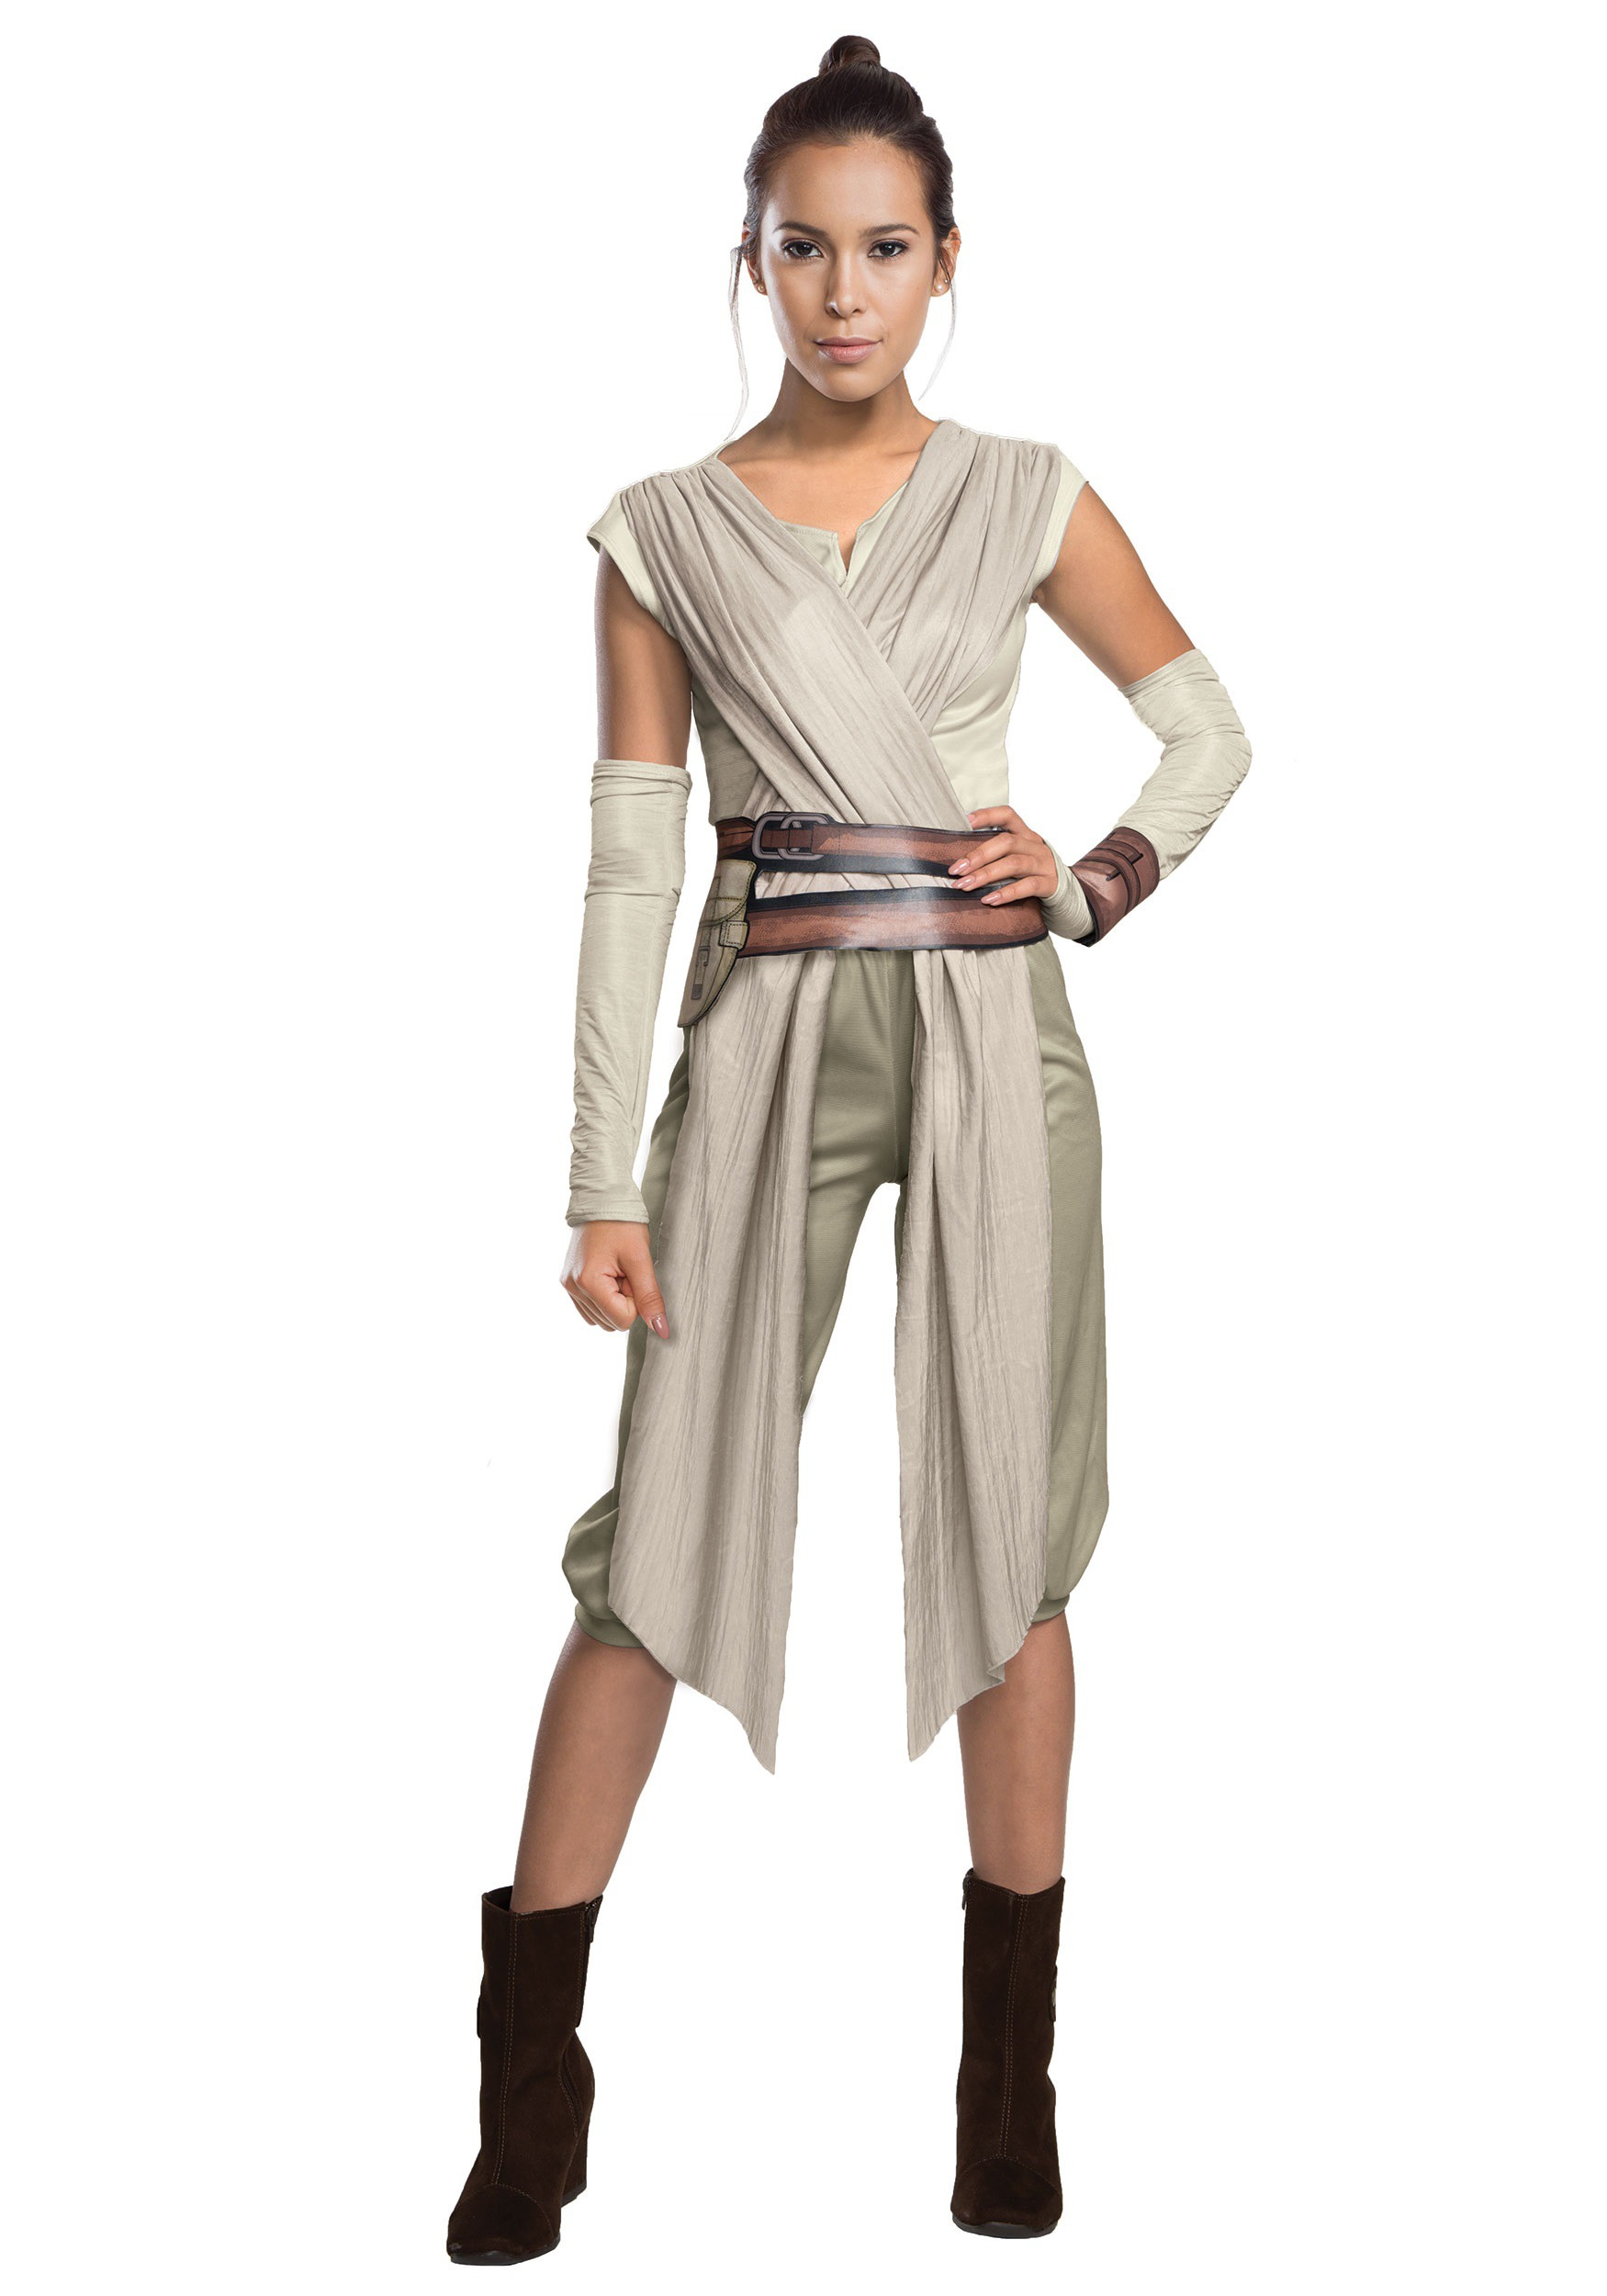 adult deluxe star wars the force awakens rey costume. Black Bedroom Furniture Sets. Home Design Ideas